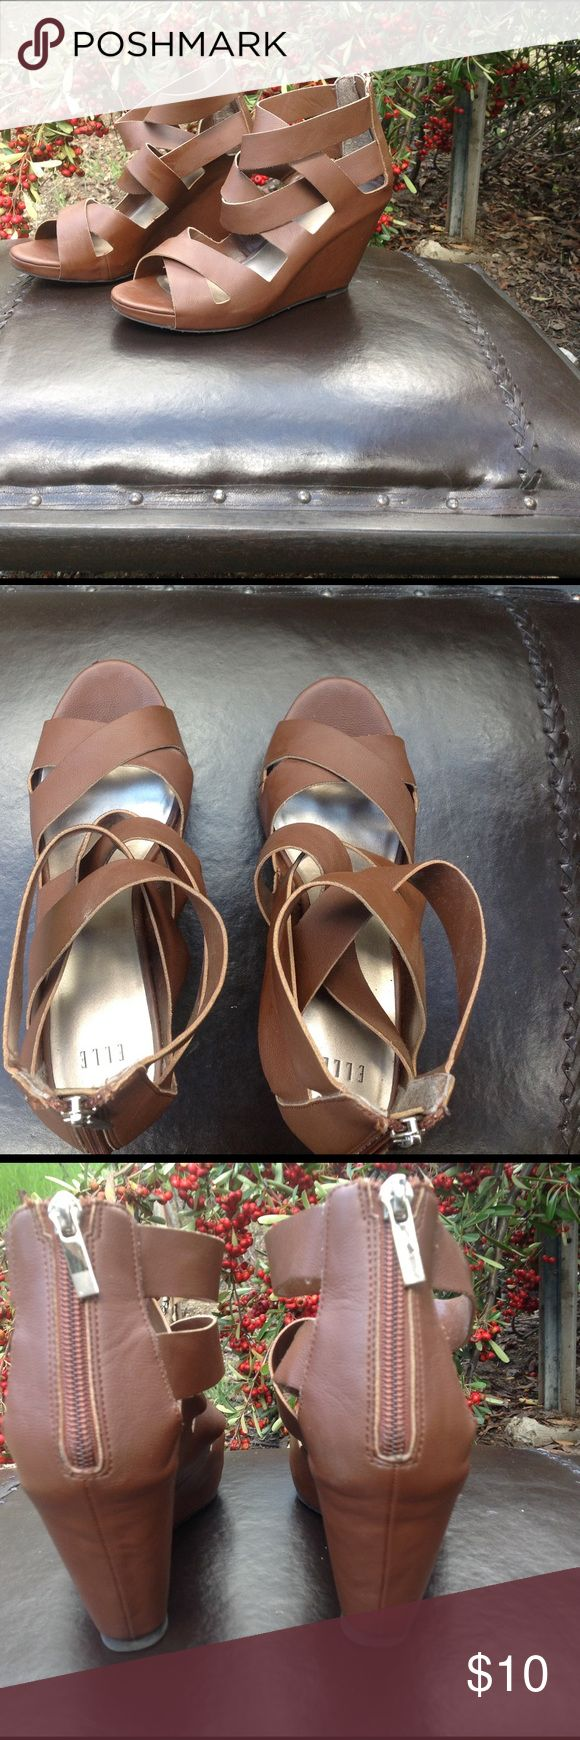 """$10 Step Into Spring 👡Sale - Elle! Great brown stappy covered heel wedge. Great with jeans, skirts, dresses and shorts. One pair of shoes for multiple great looks. EUC. Zips up the back. Man made material. 4"""" heel height from the bottom of zipper to end of heel. ELLE Shoes Wedges"""